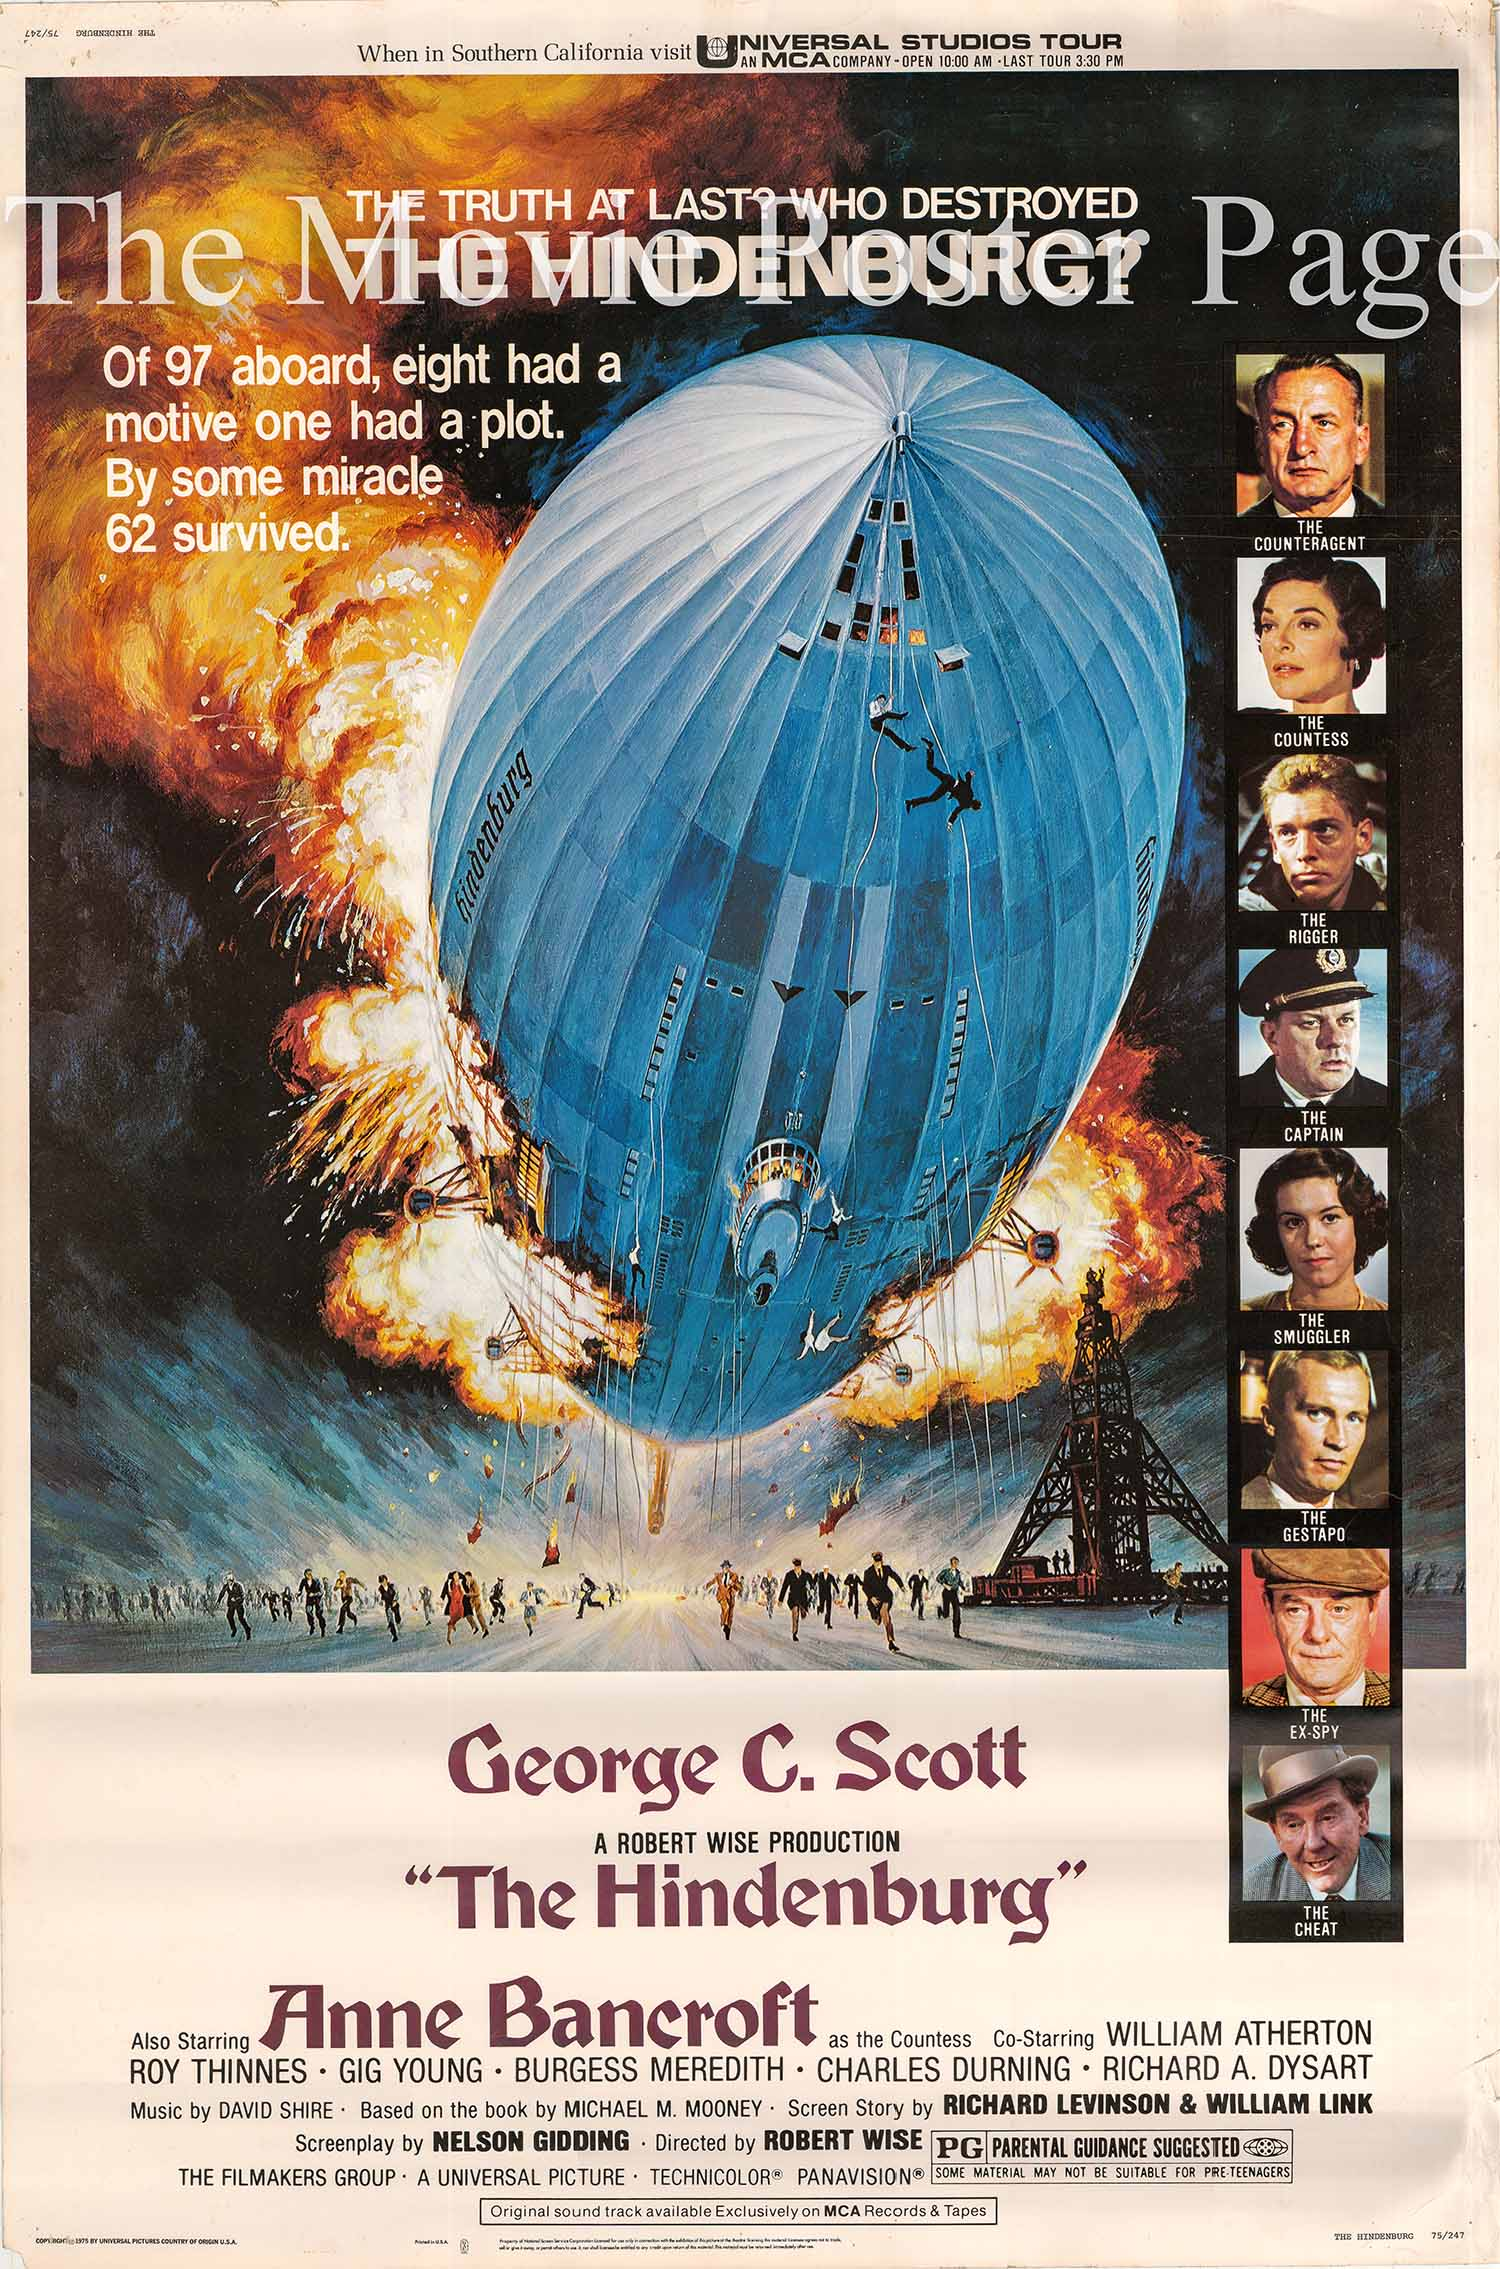 Pictured is a US 40x60 promotional poster for the 1975 Robert Wise film The Hindenburg starring George C. Scott.